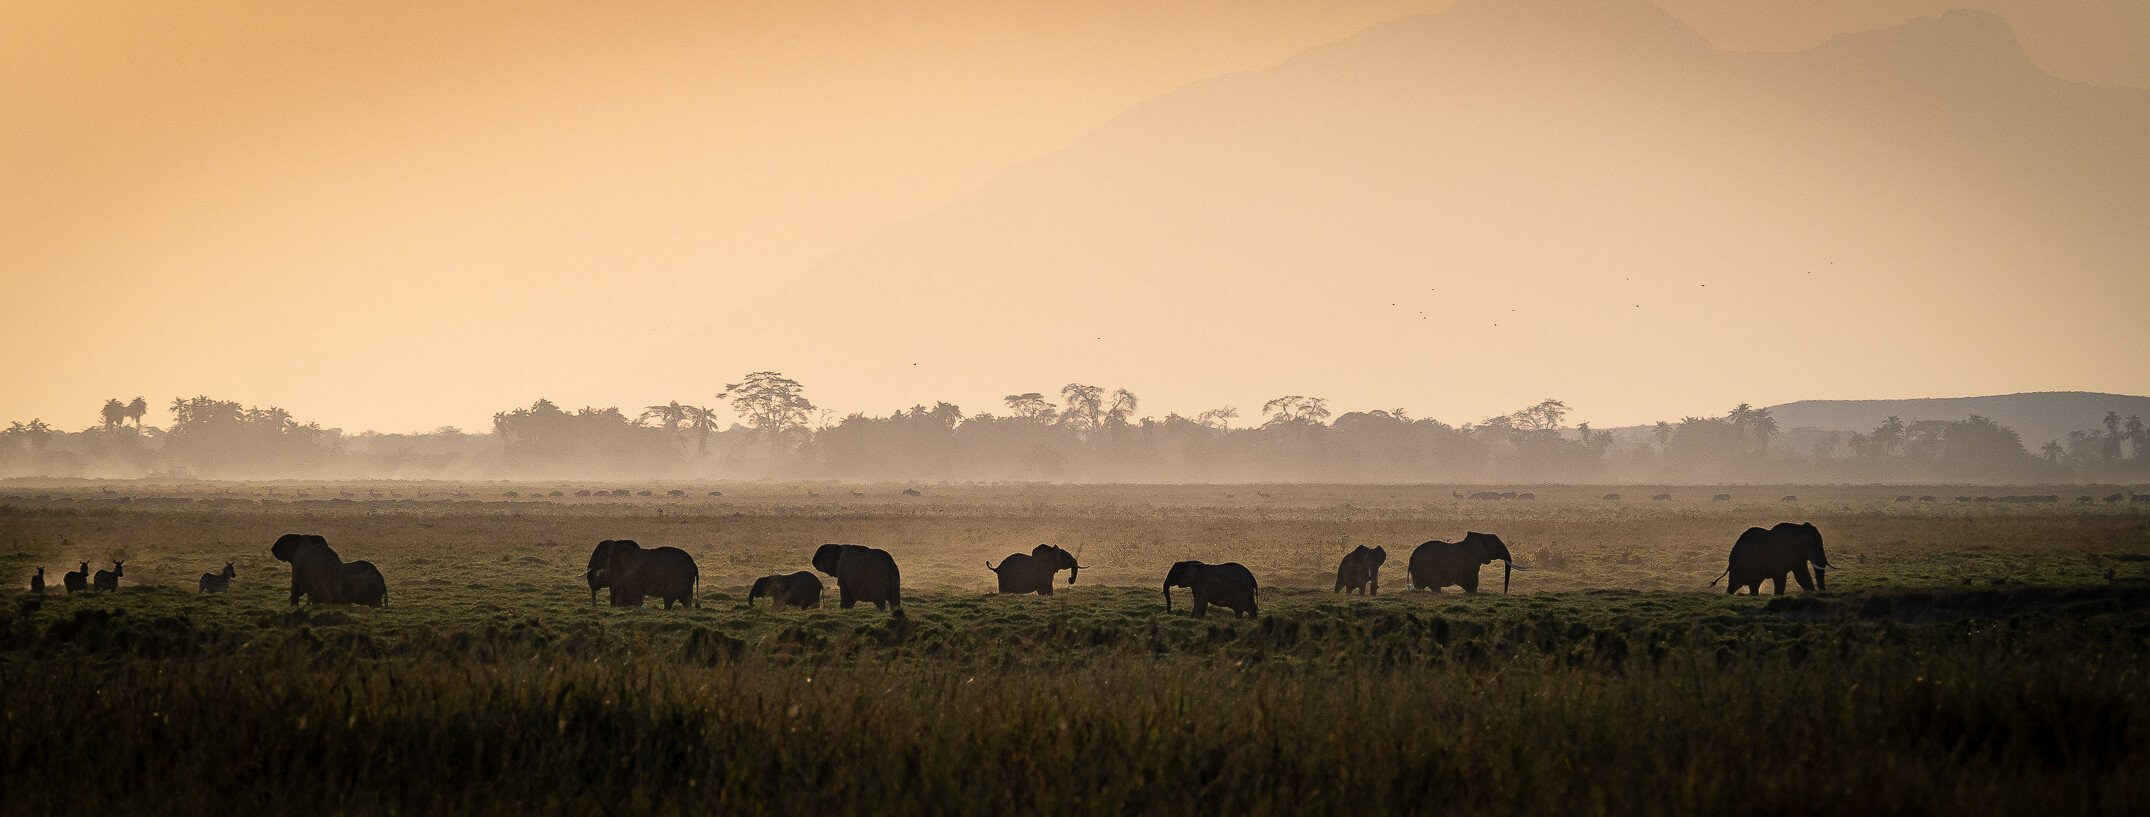 Herd of elephants wandering around on the grasslands of Kenya